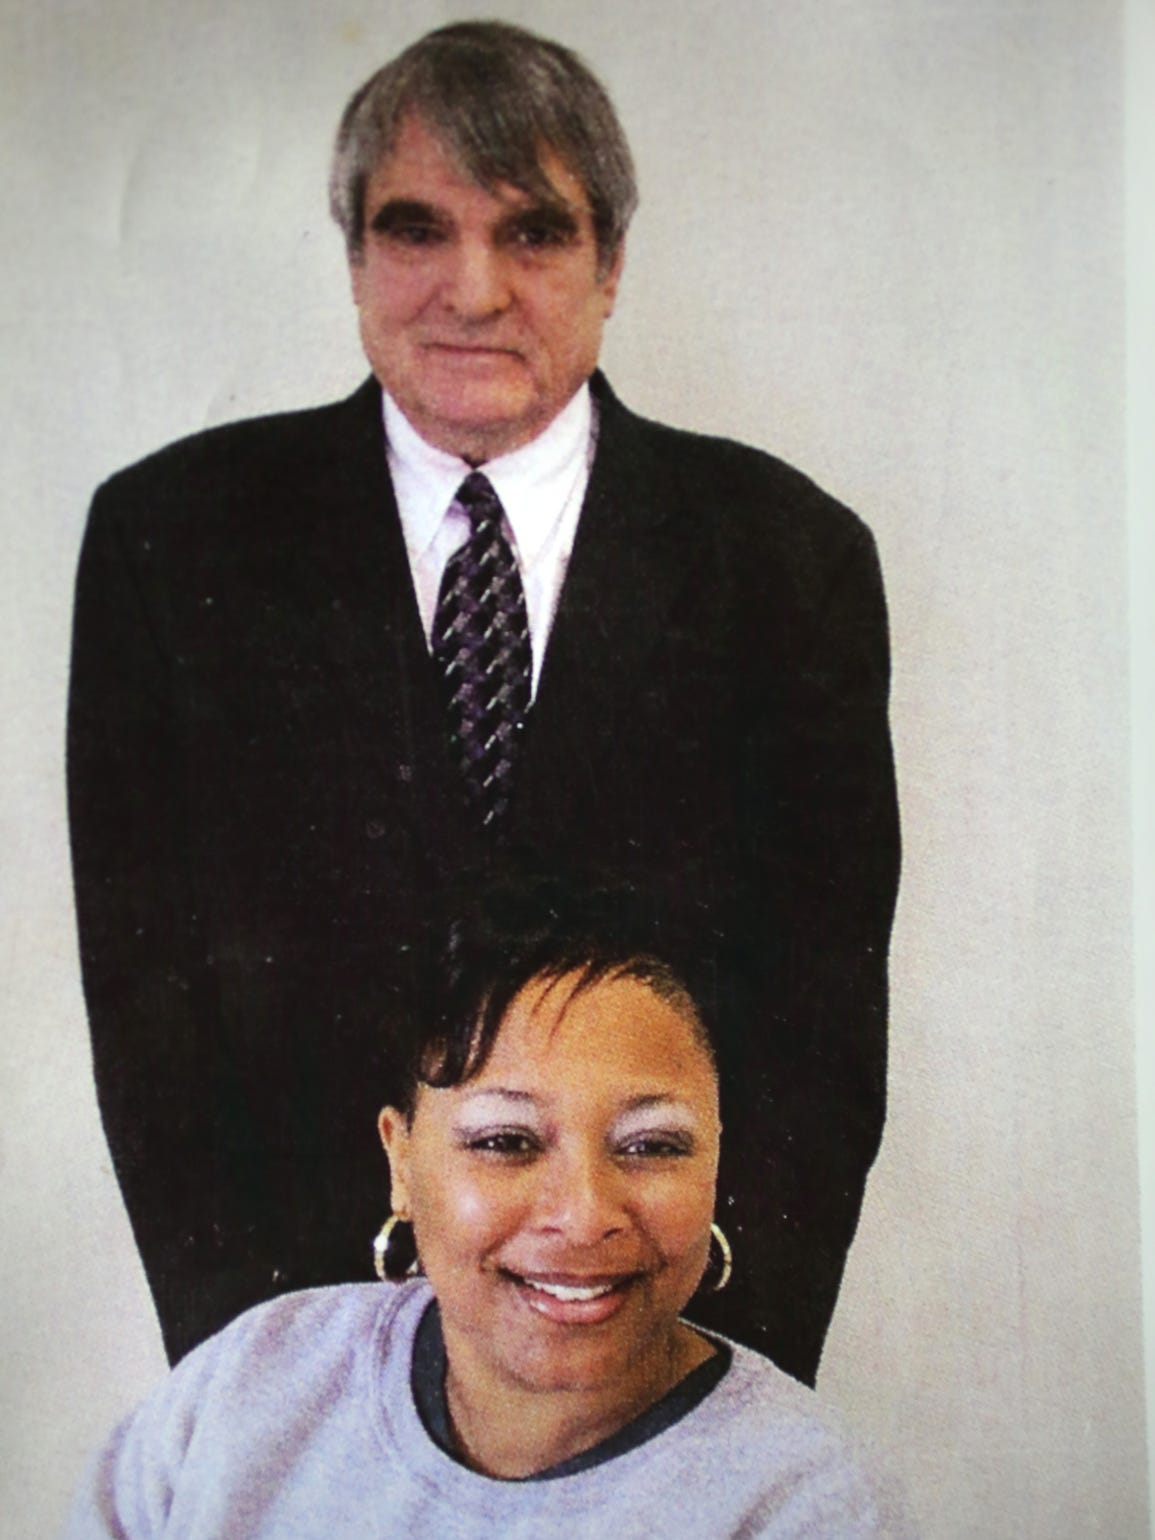 This is a photo of Bill Pelke and Paula Cooper when